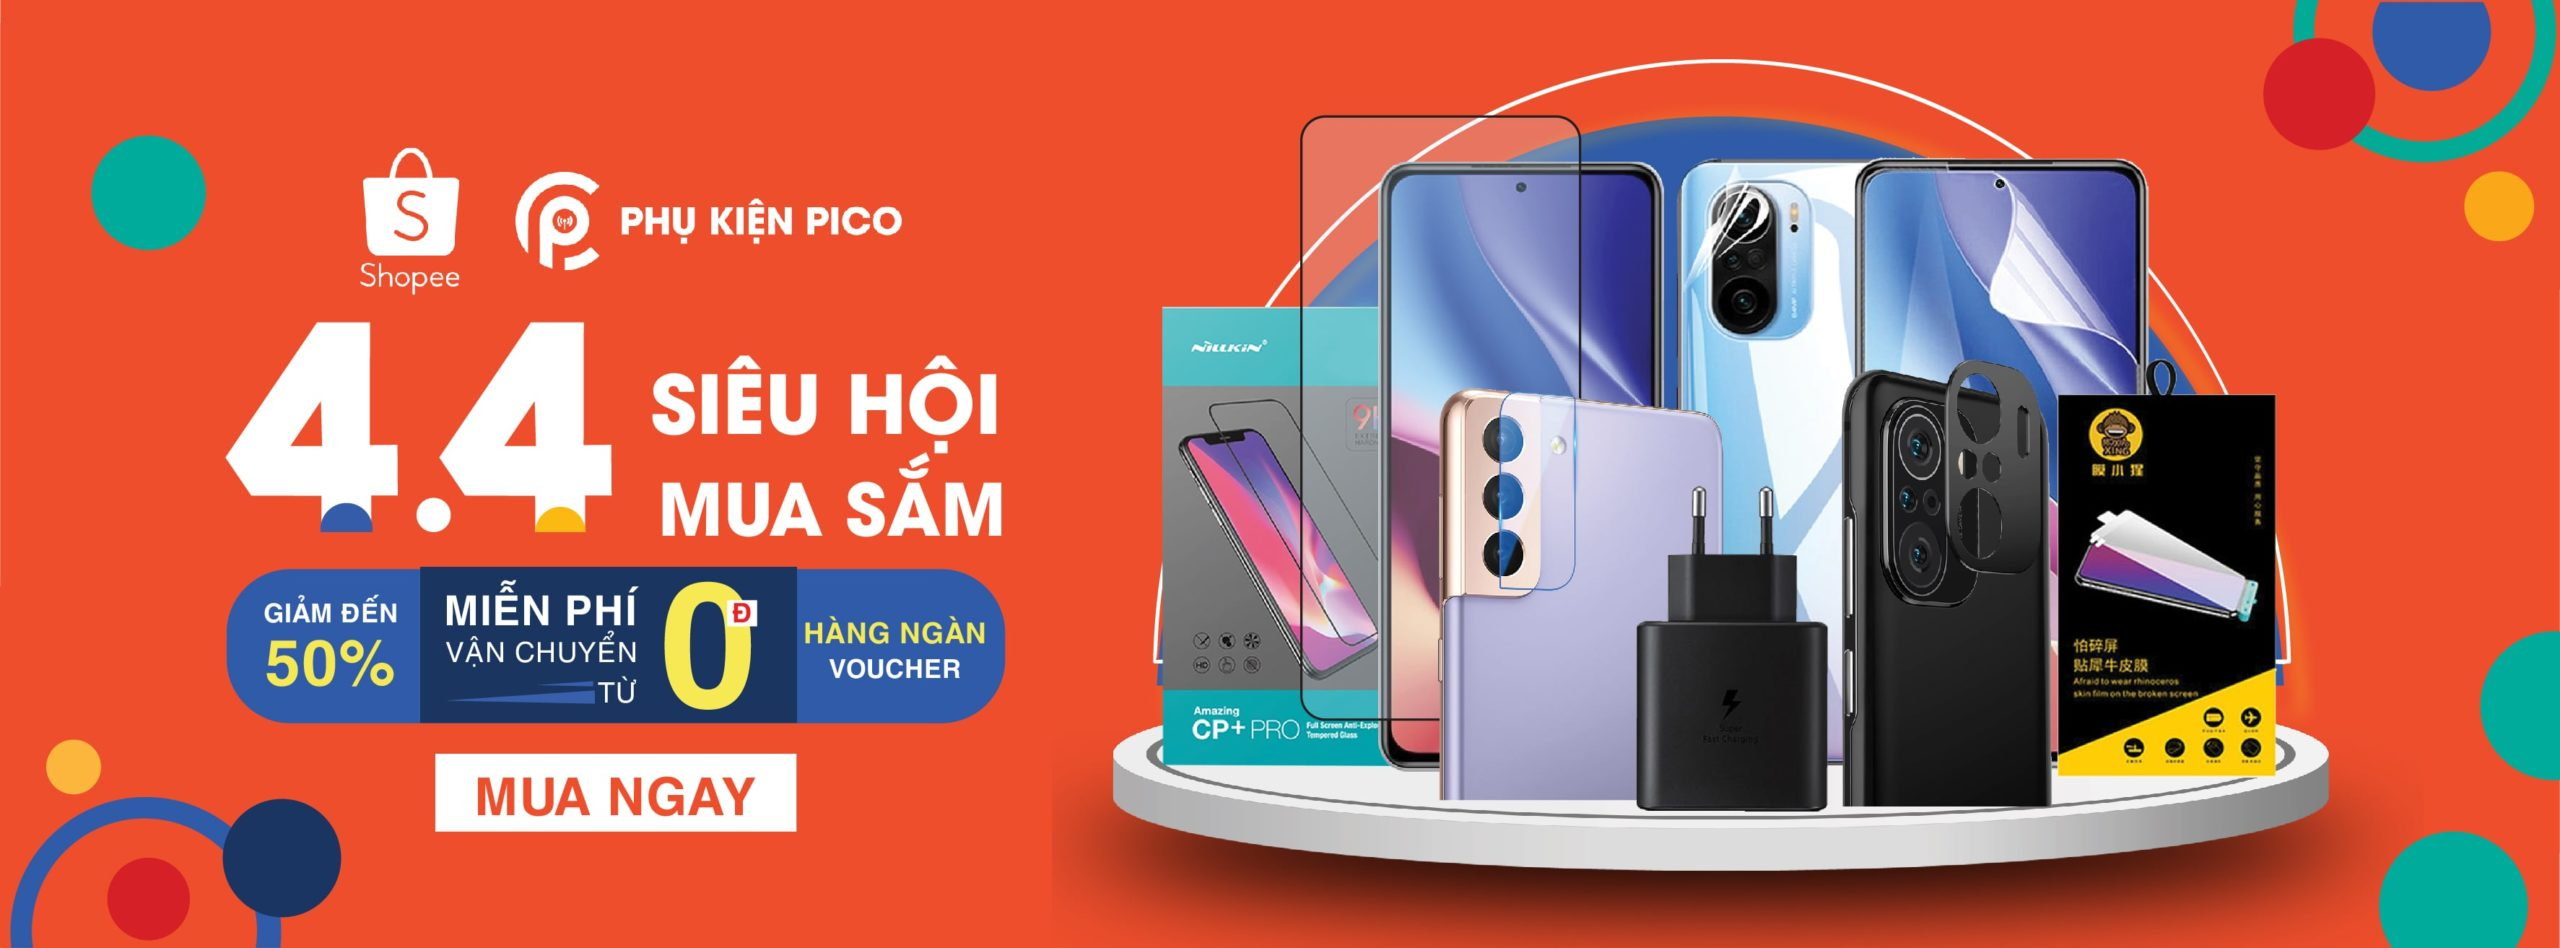 banner-website-01-01-min-scaled Phụ kiện pico